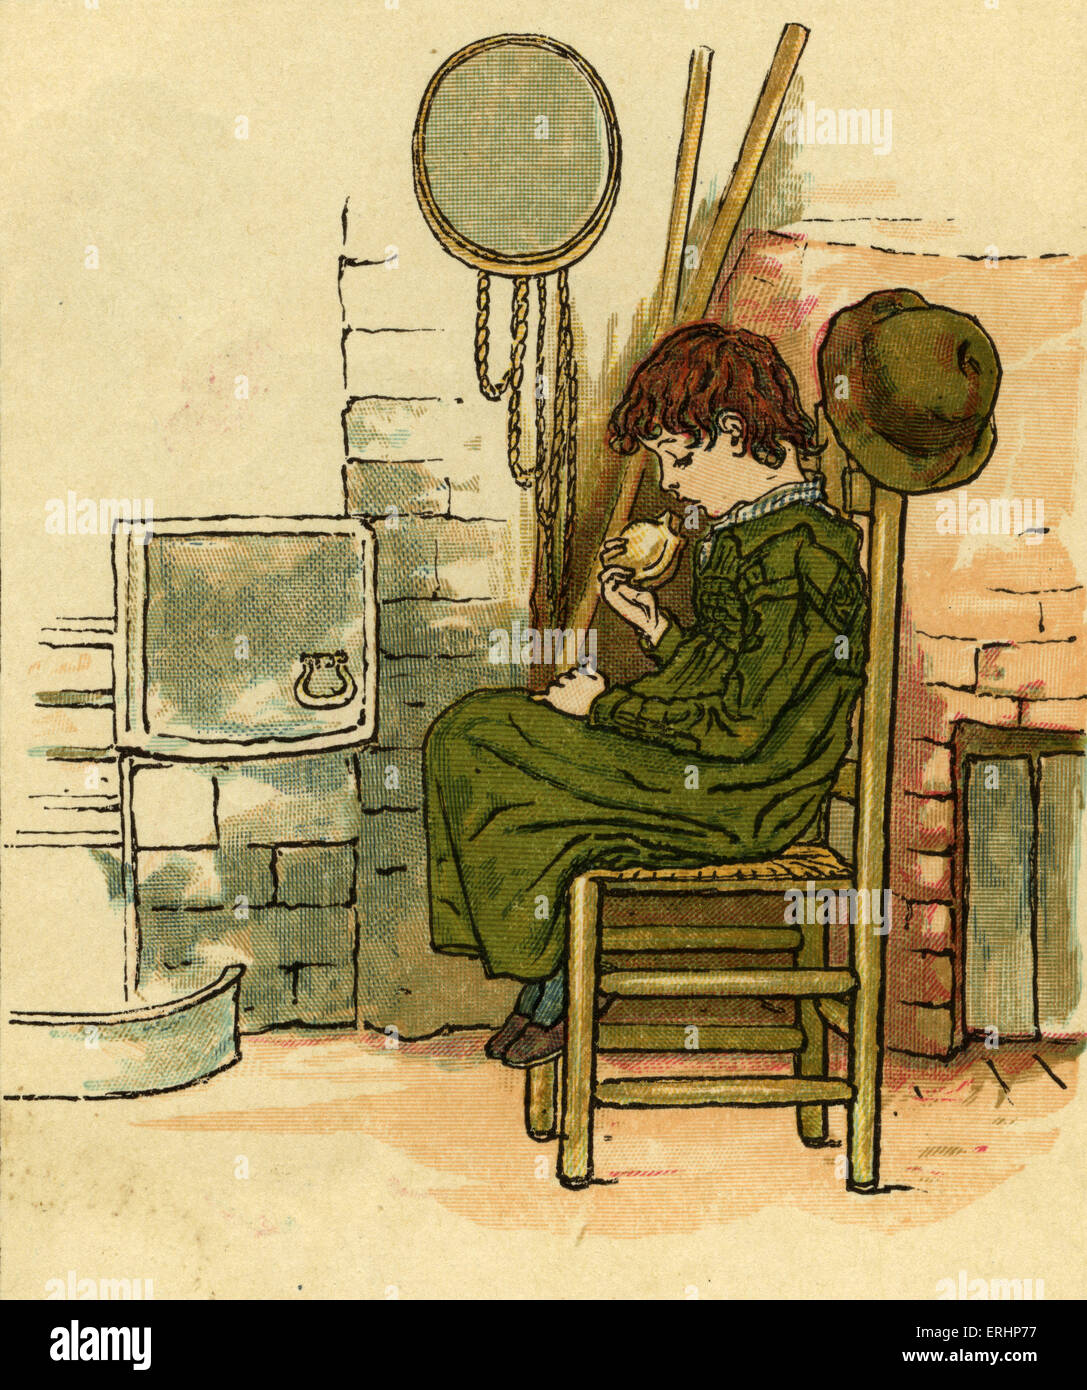 Little Jack Horner nursery rhyme illustrated by Kate Greenaway. English children 's book illustrator and authoress - Stock Image